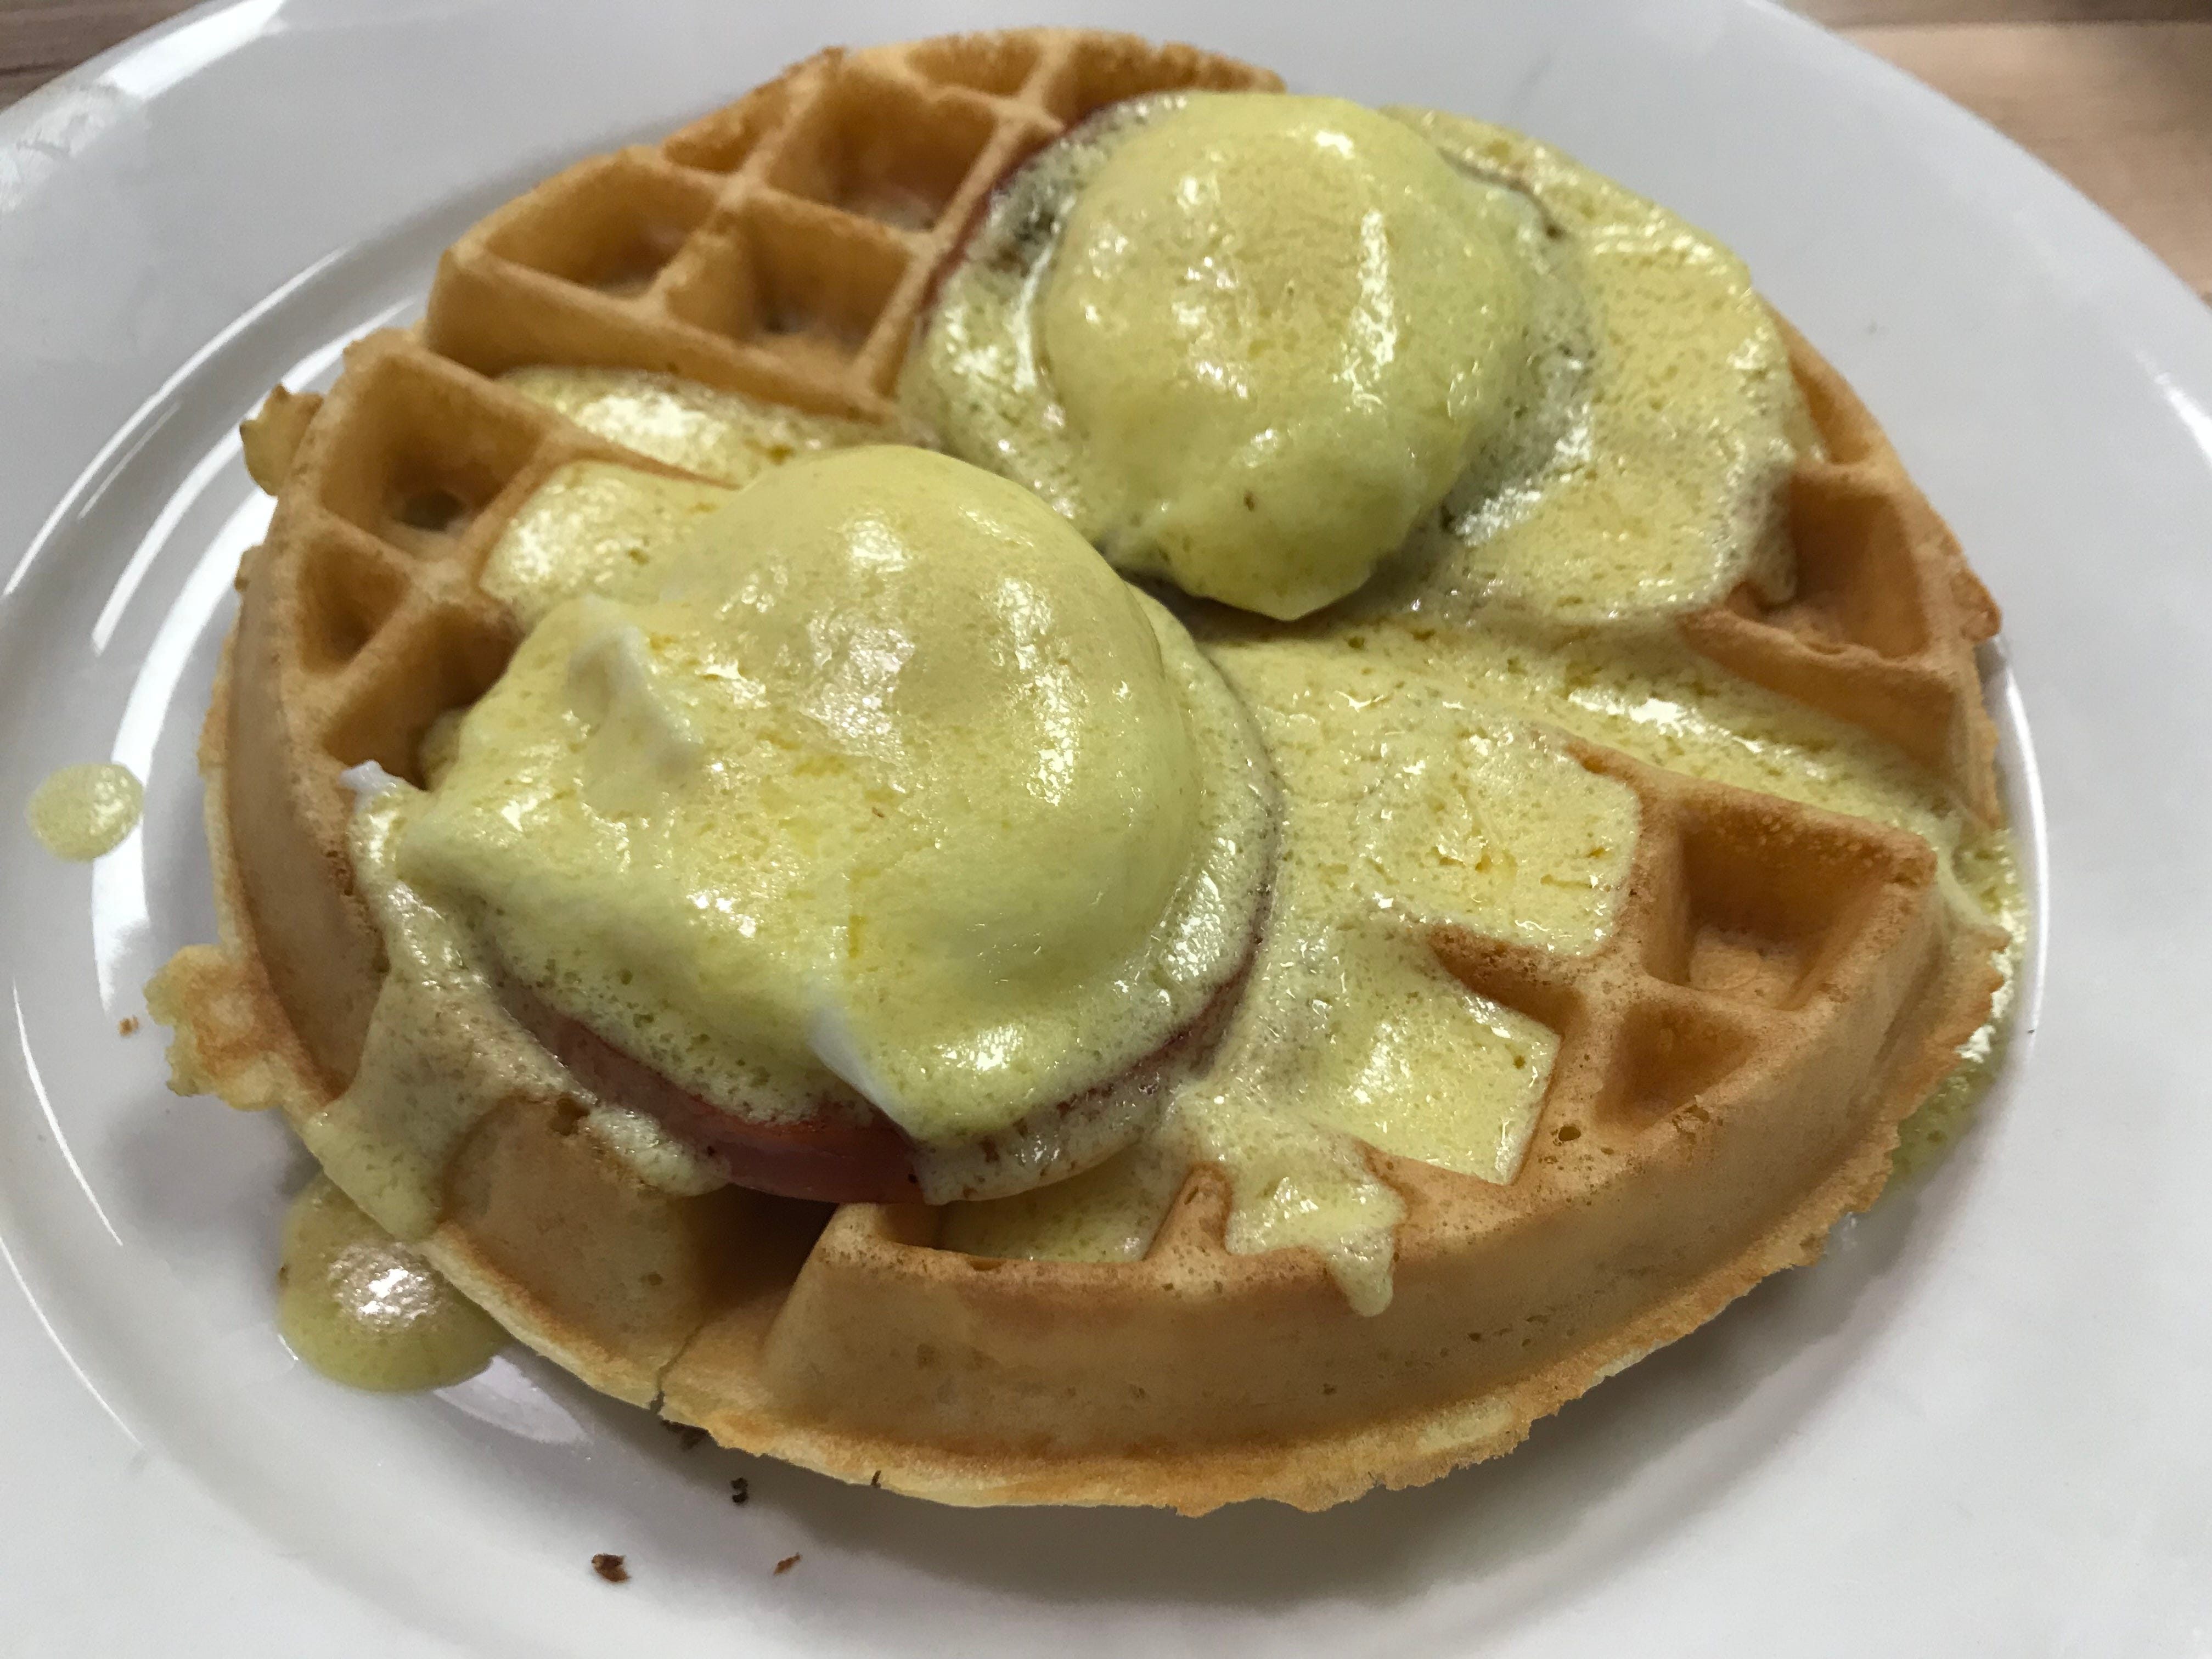 The Original Steve's Diner offers a large list of Benedicts. The Waffles Benedict is one of the creative preparations.